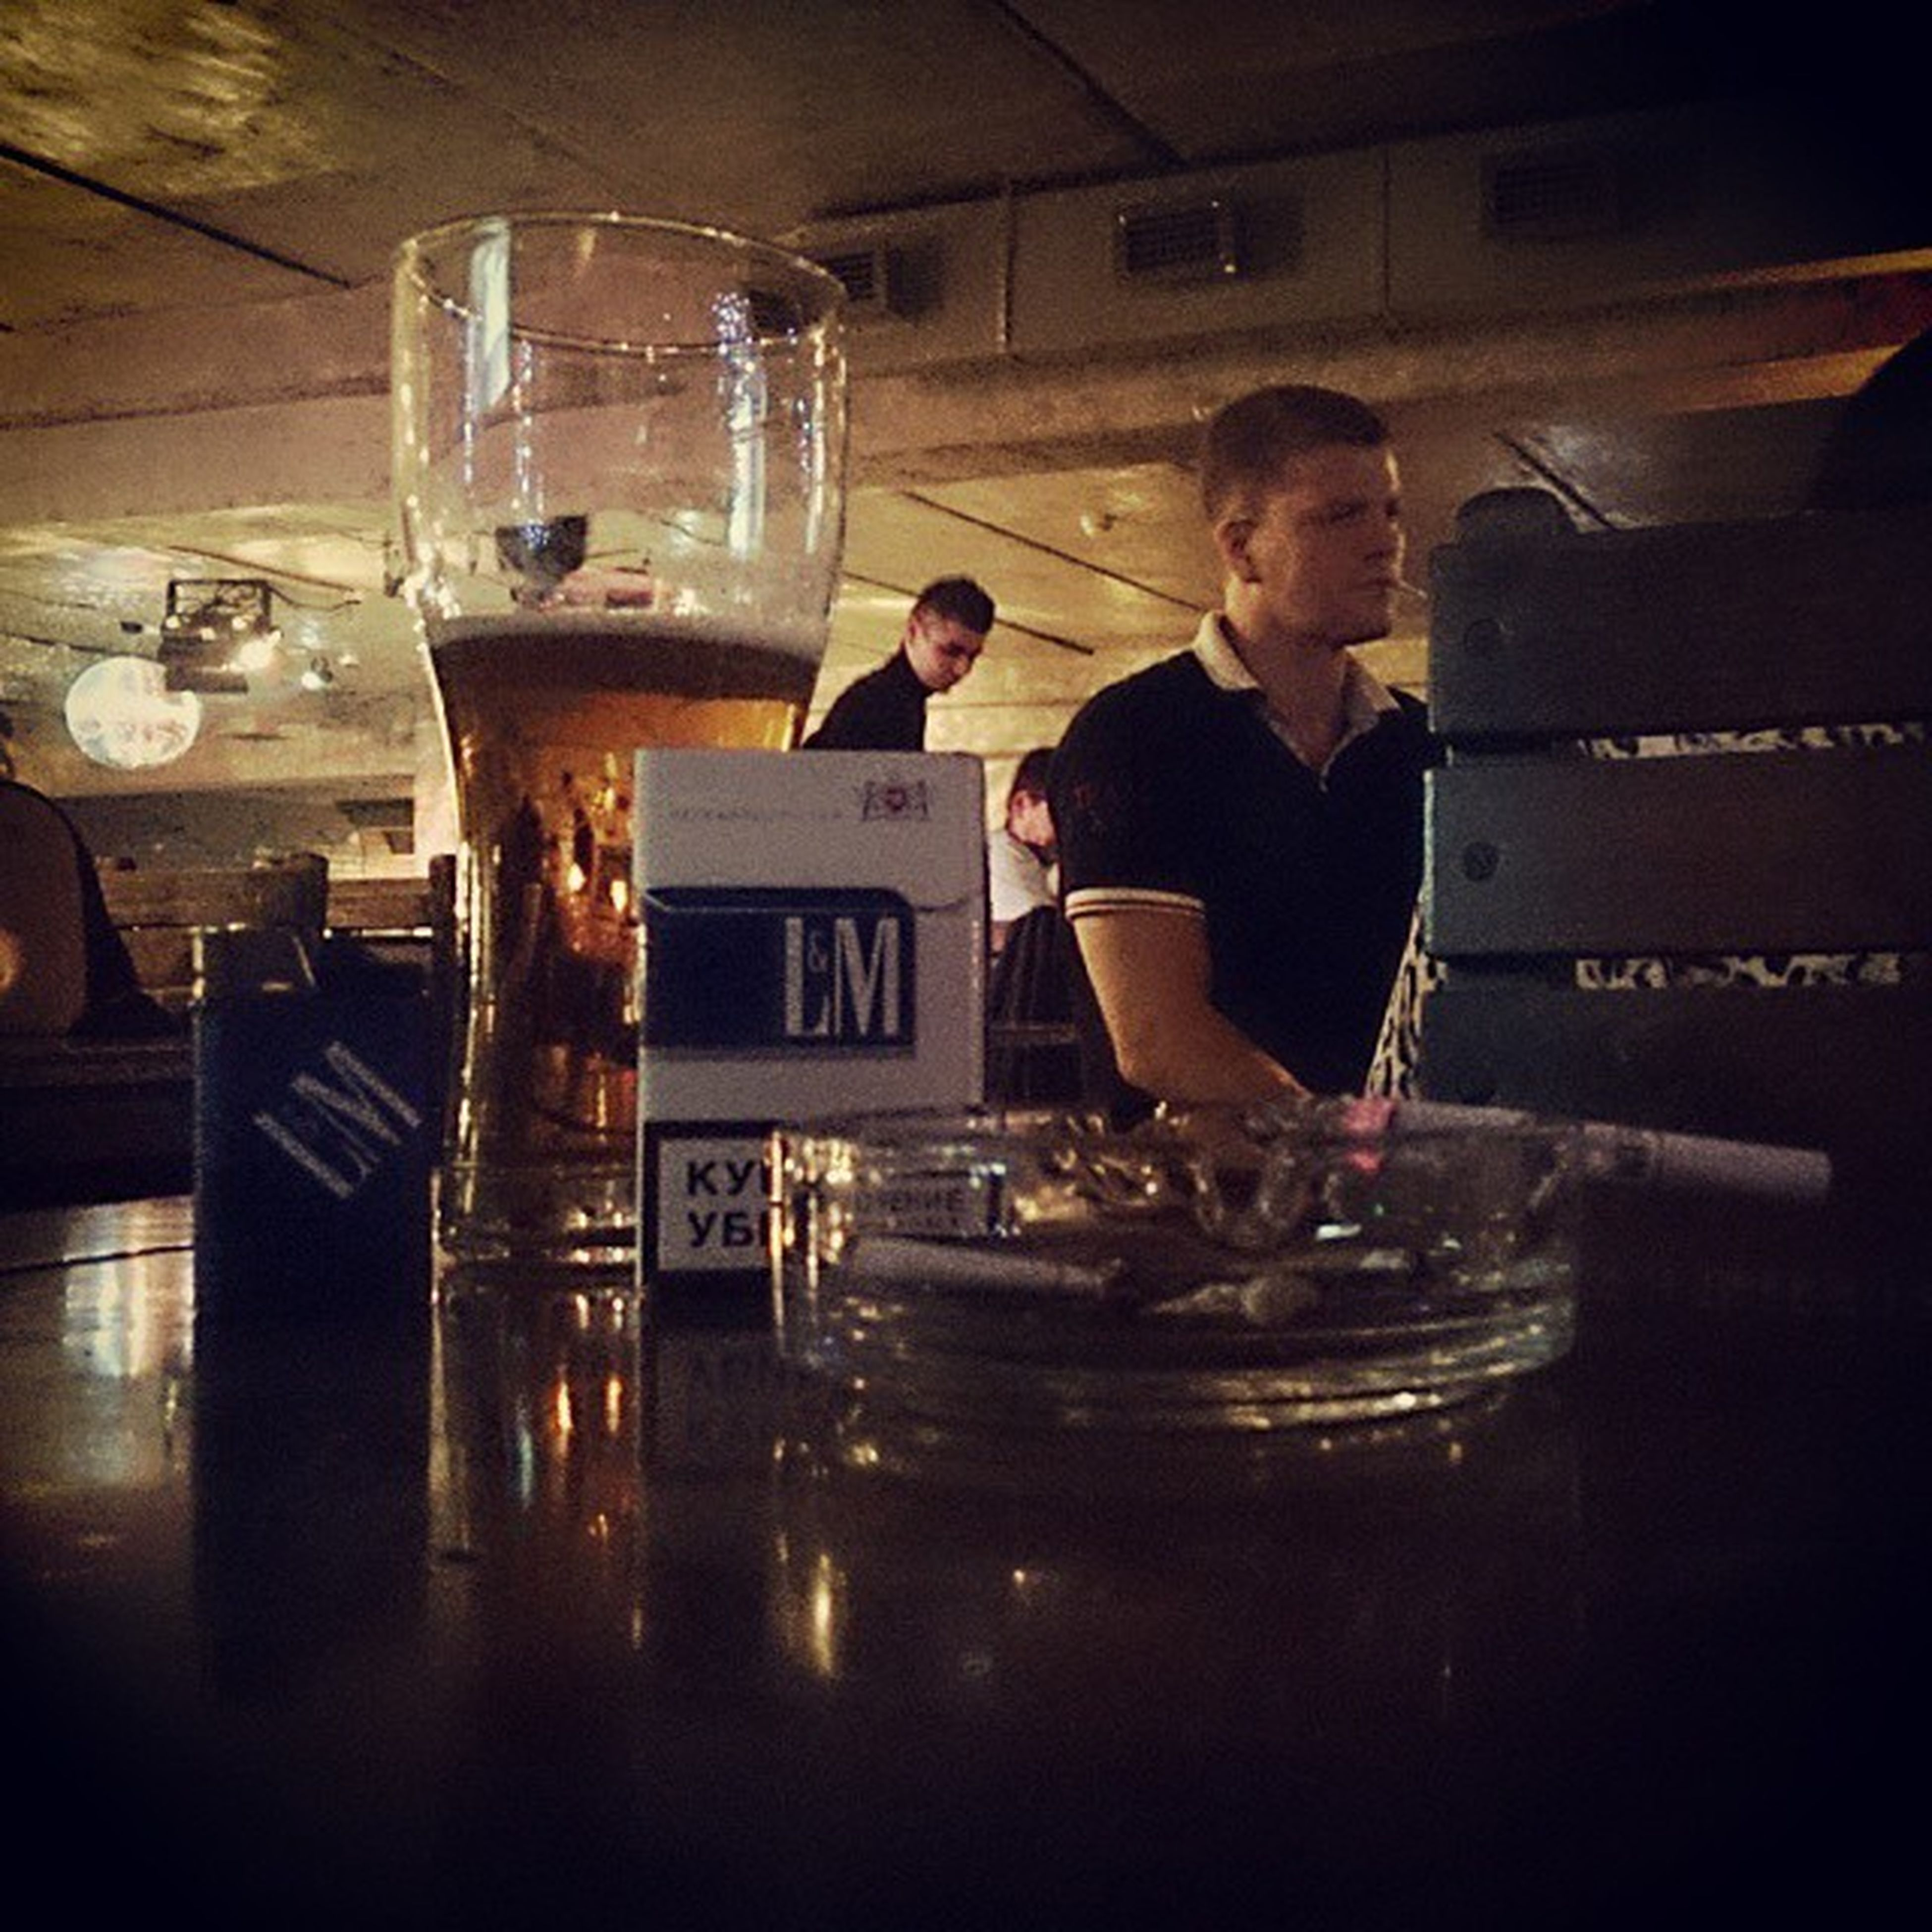 indoors, food and drink, drink, lifestyles, refreshment, table, young men, holding, person, leisure activity, restaurant, drinking glass, alcohol, sitting, casual clothing, men, freshness